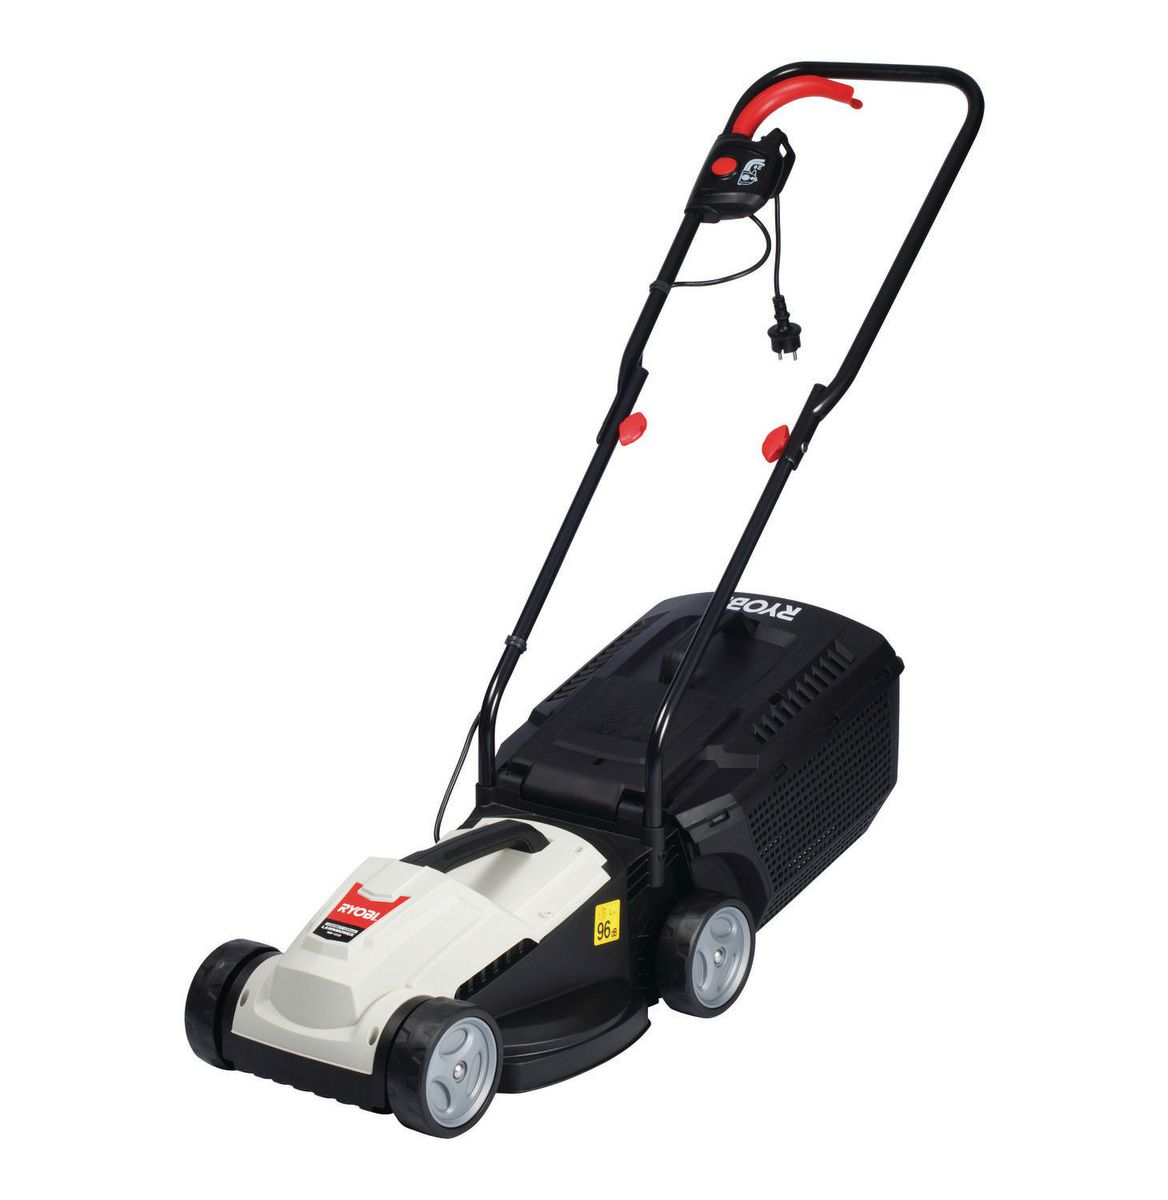 Ryobi 1200w Electric Lawn Mower Review Wiring Diagram Master Blogs Tractor Electrical Lawnmower 320mm Buy Online In